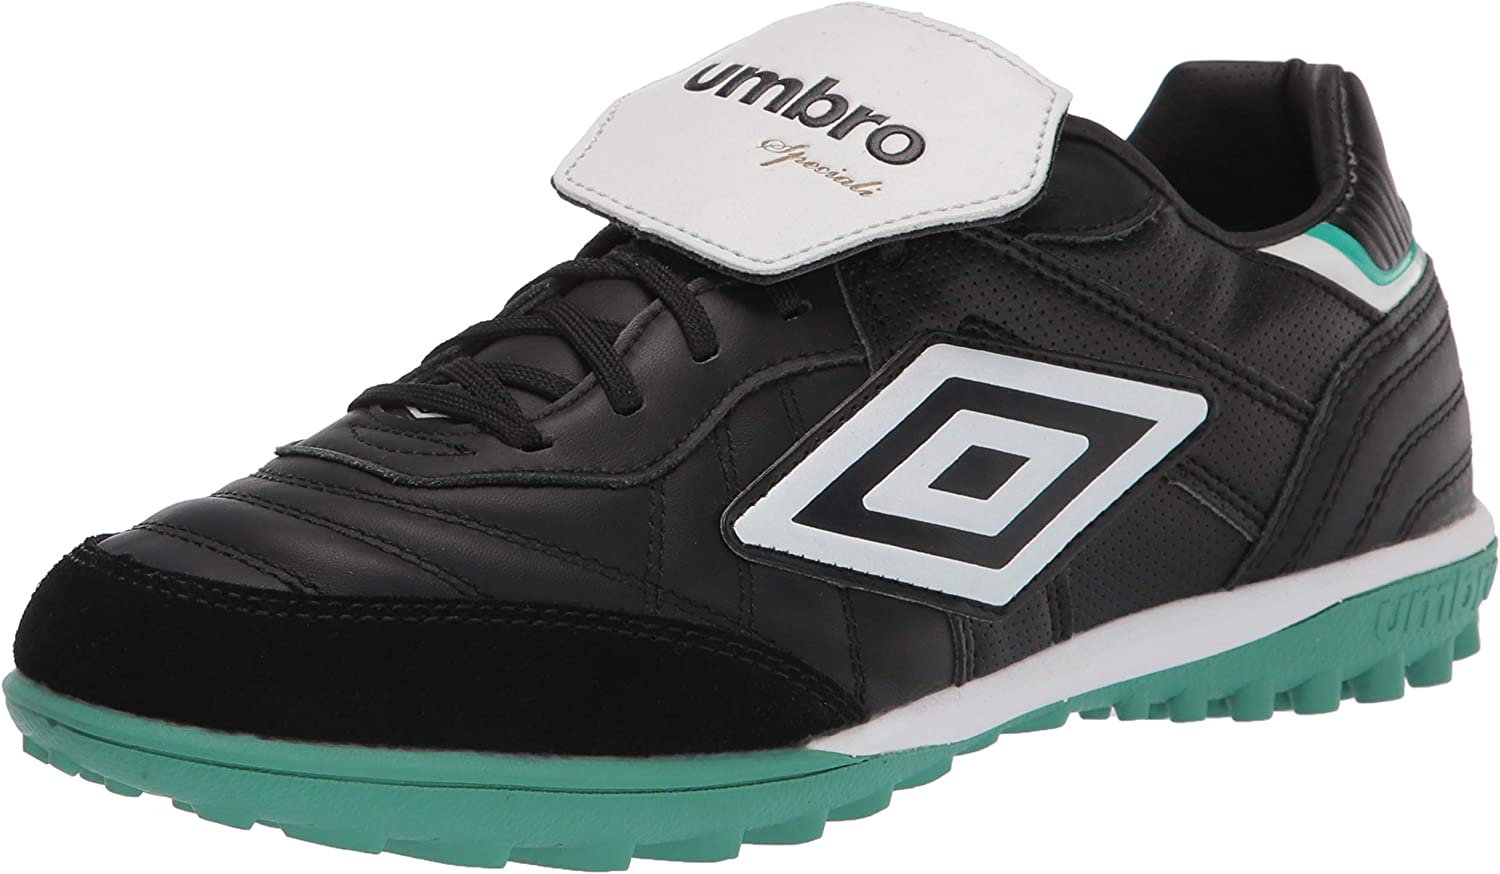 Umbro Speciali Eternal Club Tf Soccer Shoe